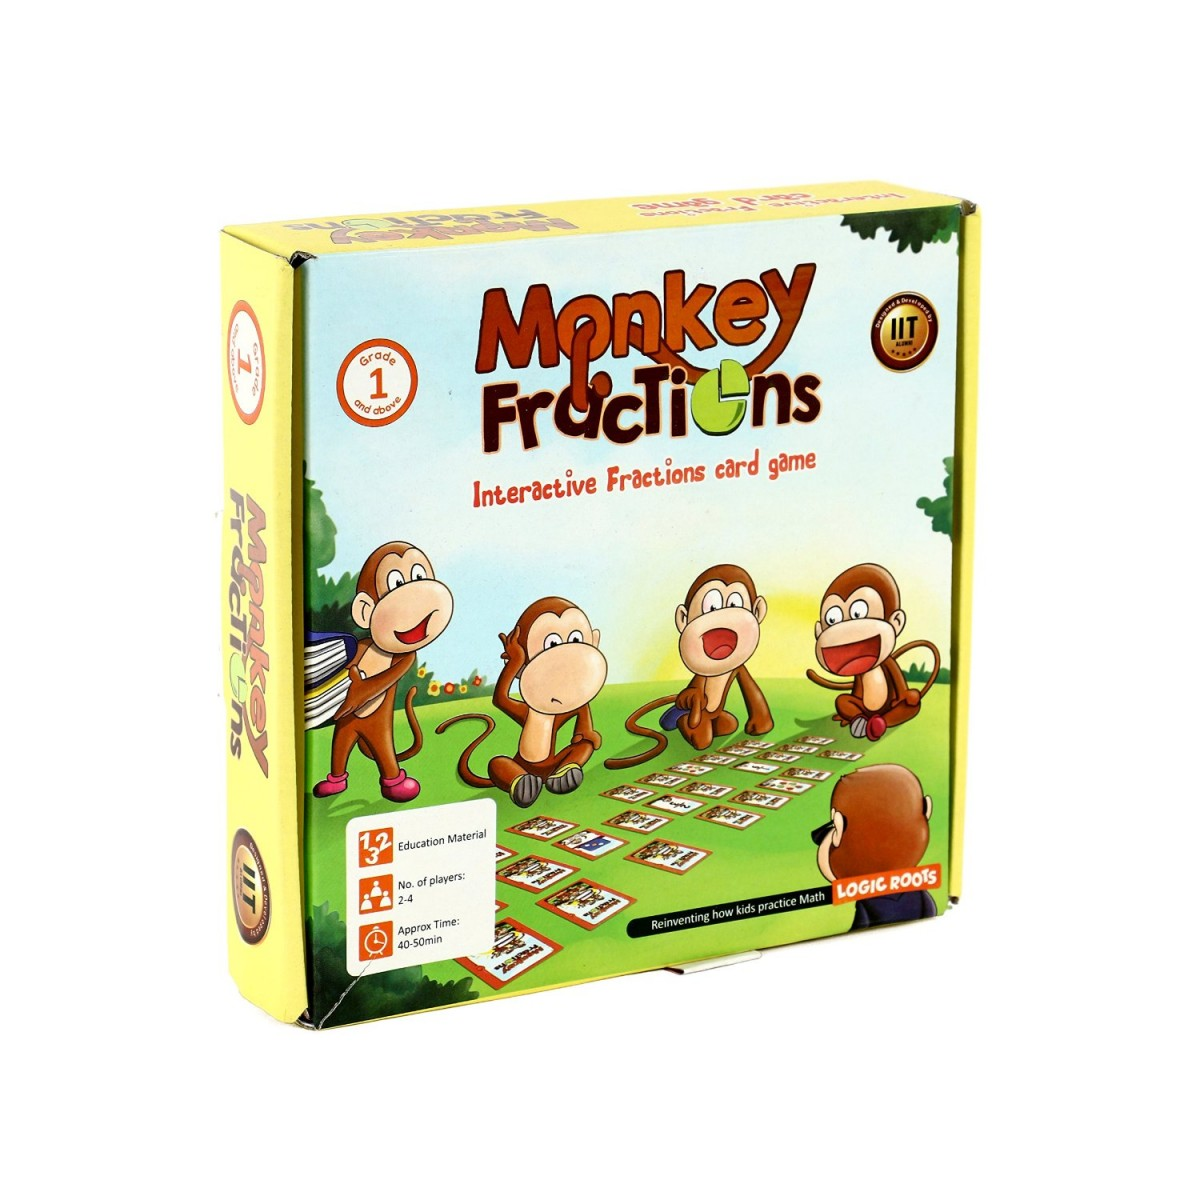 Logicroots Fractions Card Game Monkey Fractions For Kids Of Grade 1 And Above To Learn Fraction